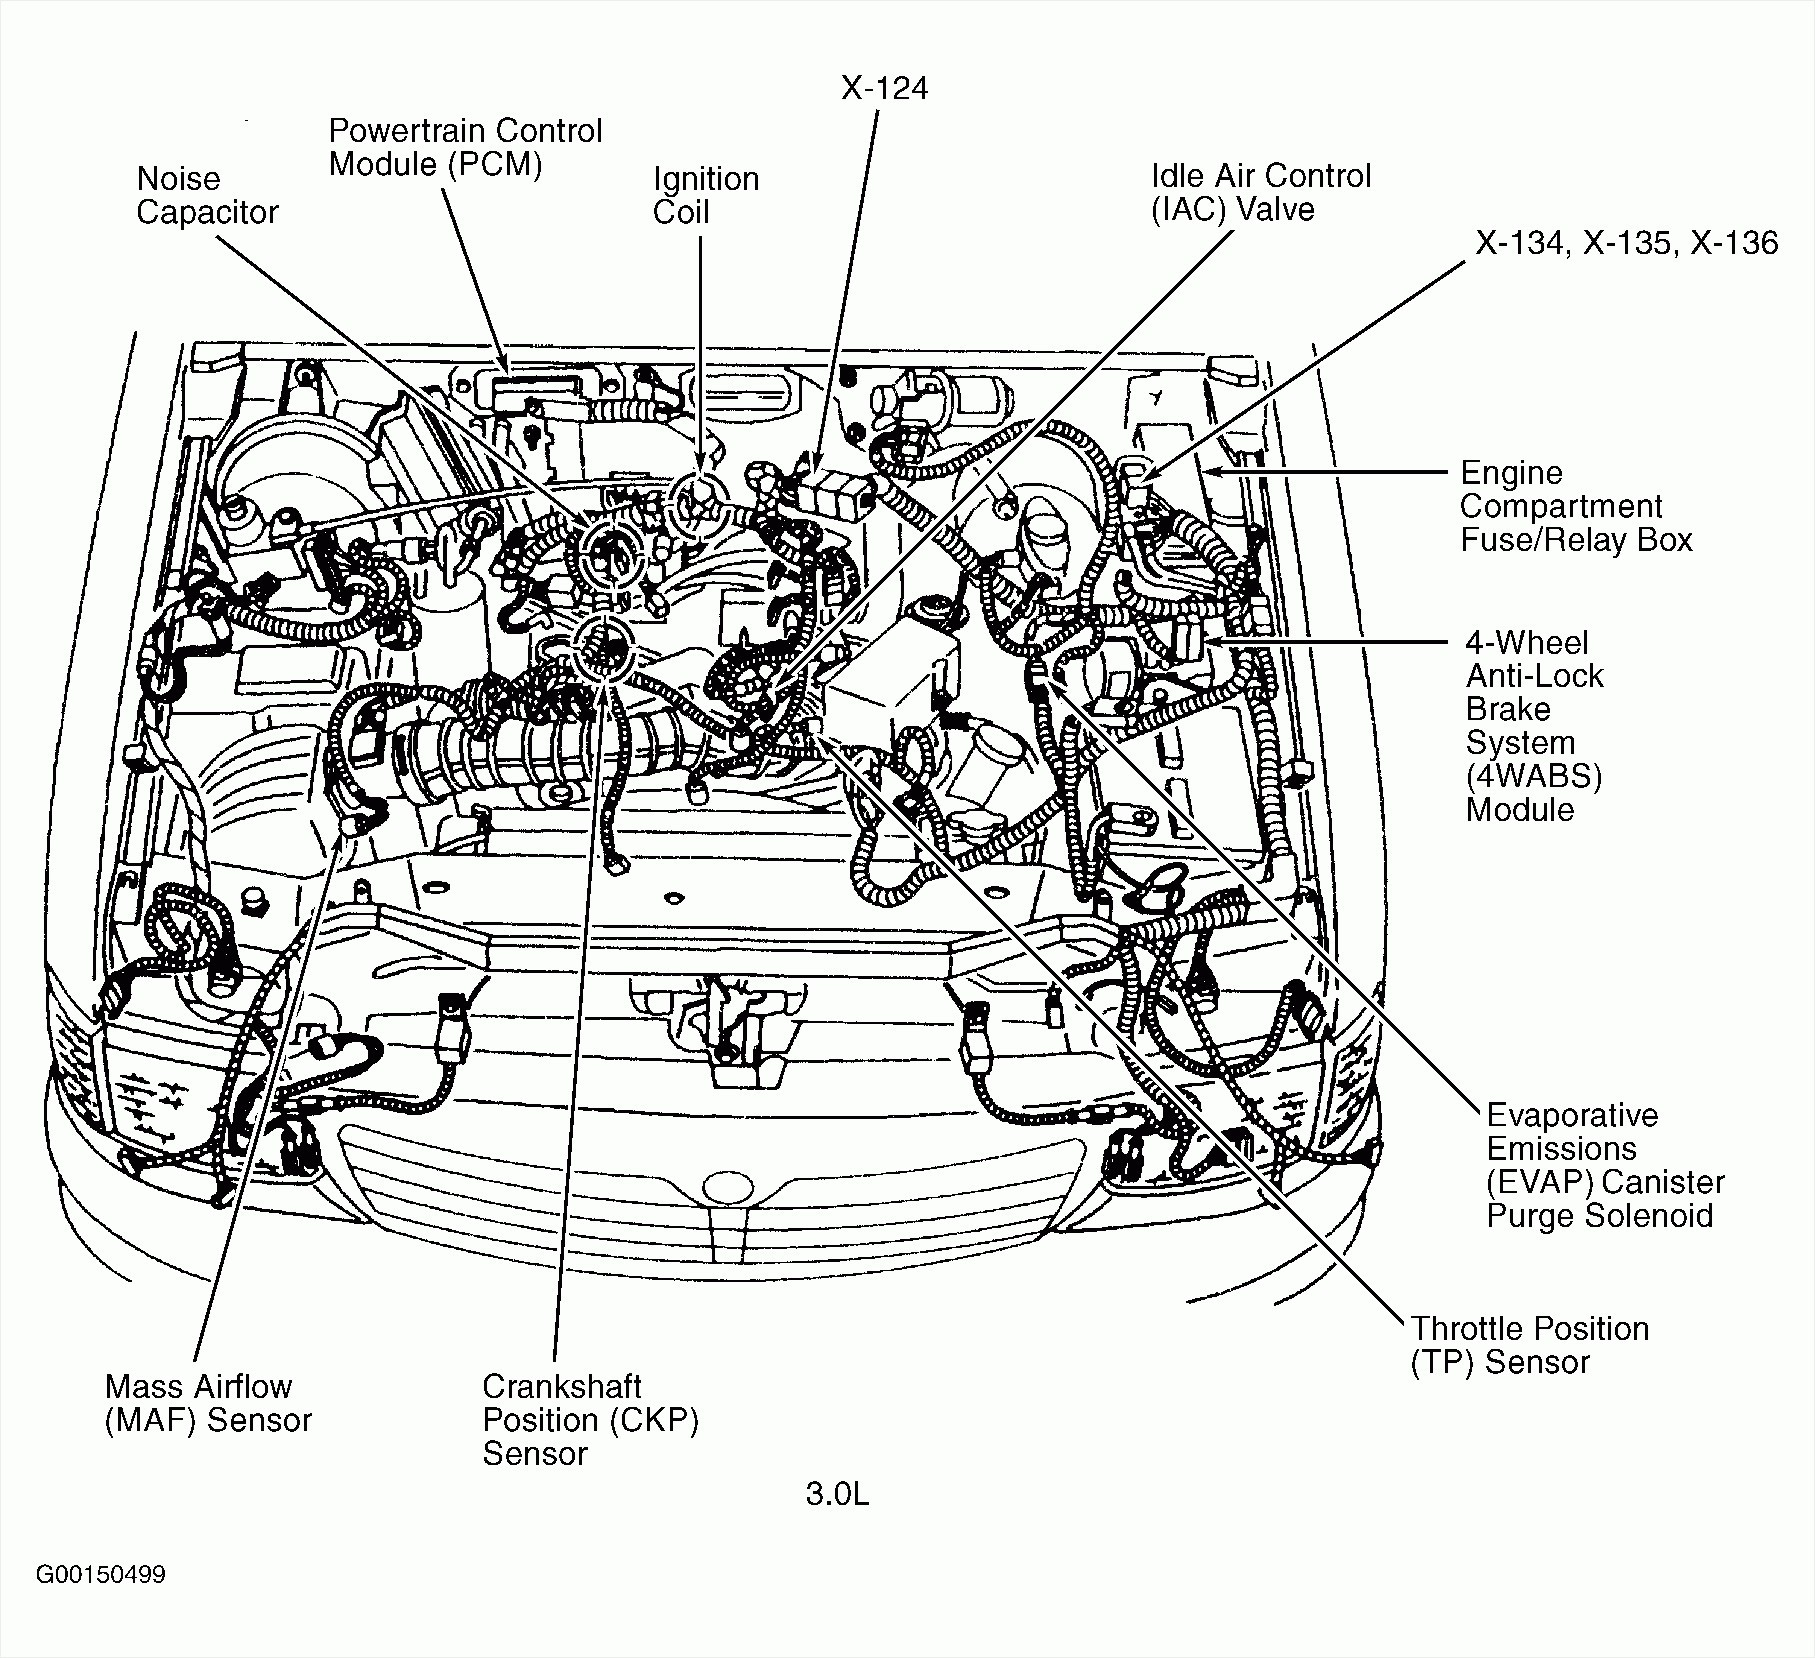 hight resolution of buick lesabre 3800 engine diagram wiring diagram review diagram likewise 2000 buick lesabre engine diagram likewise